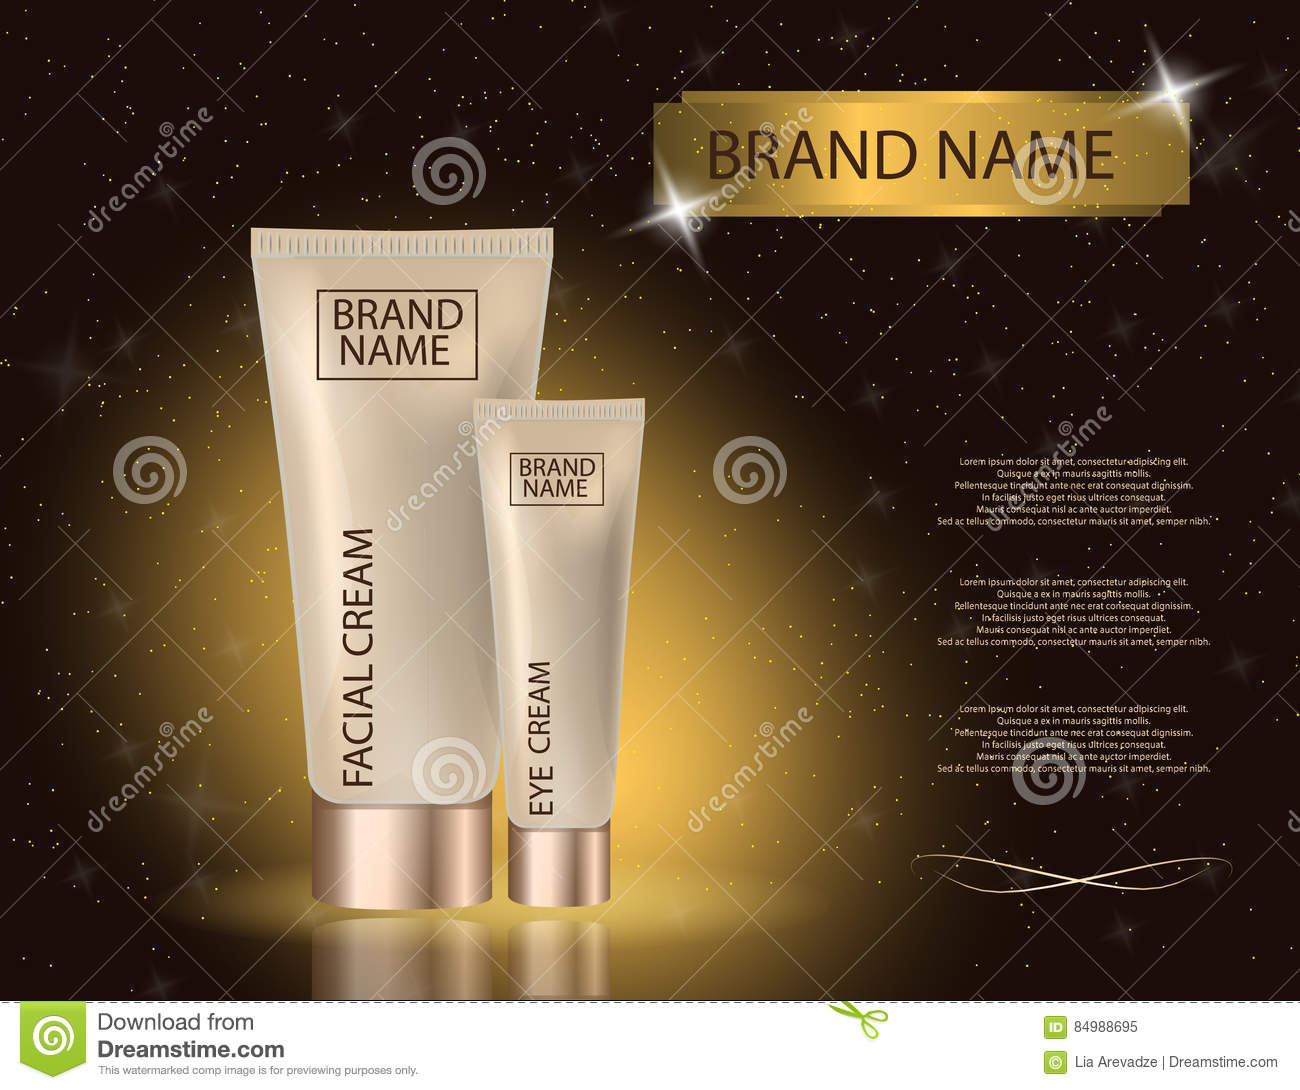 Glamorous facial and eye cream jar on the sparkling effects background.